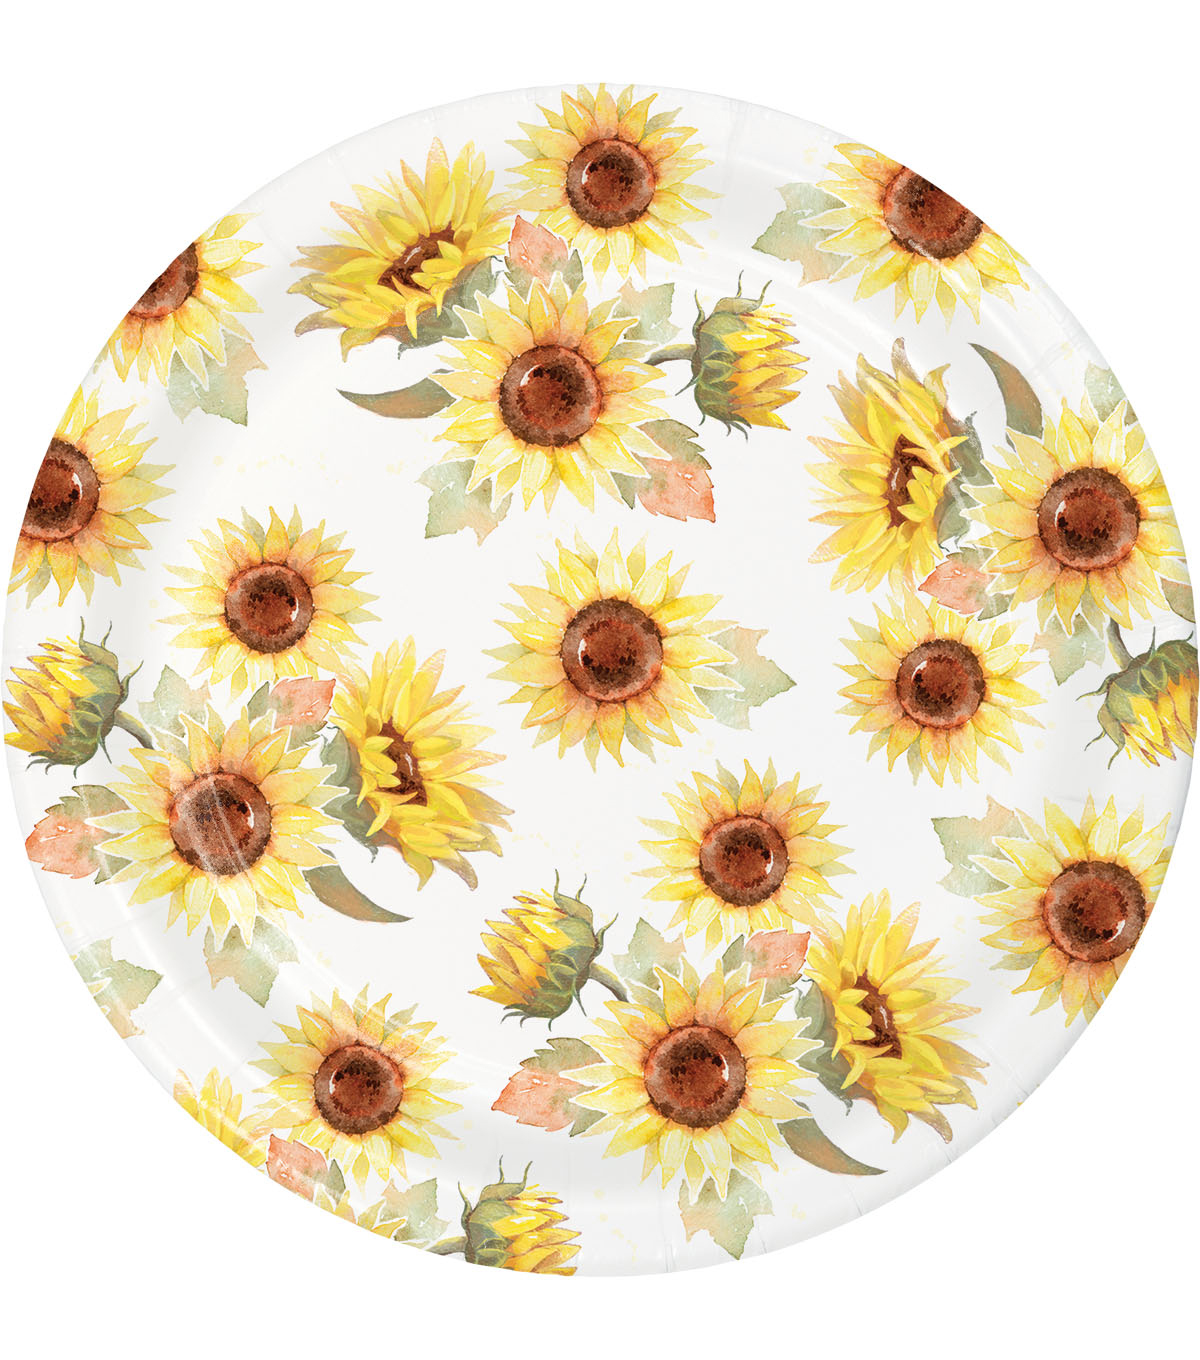 Simply Autumn 8 pk Lunch Plates-Sunflowers